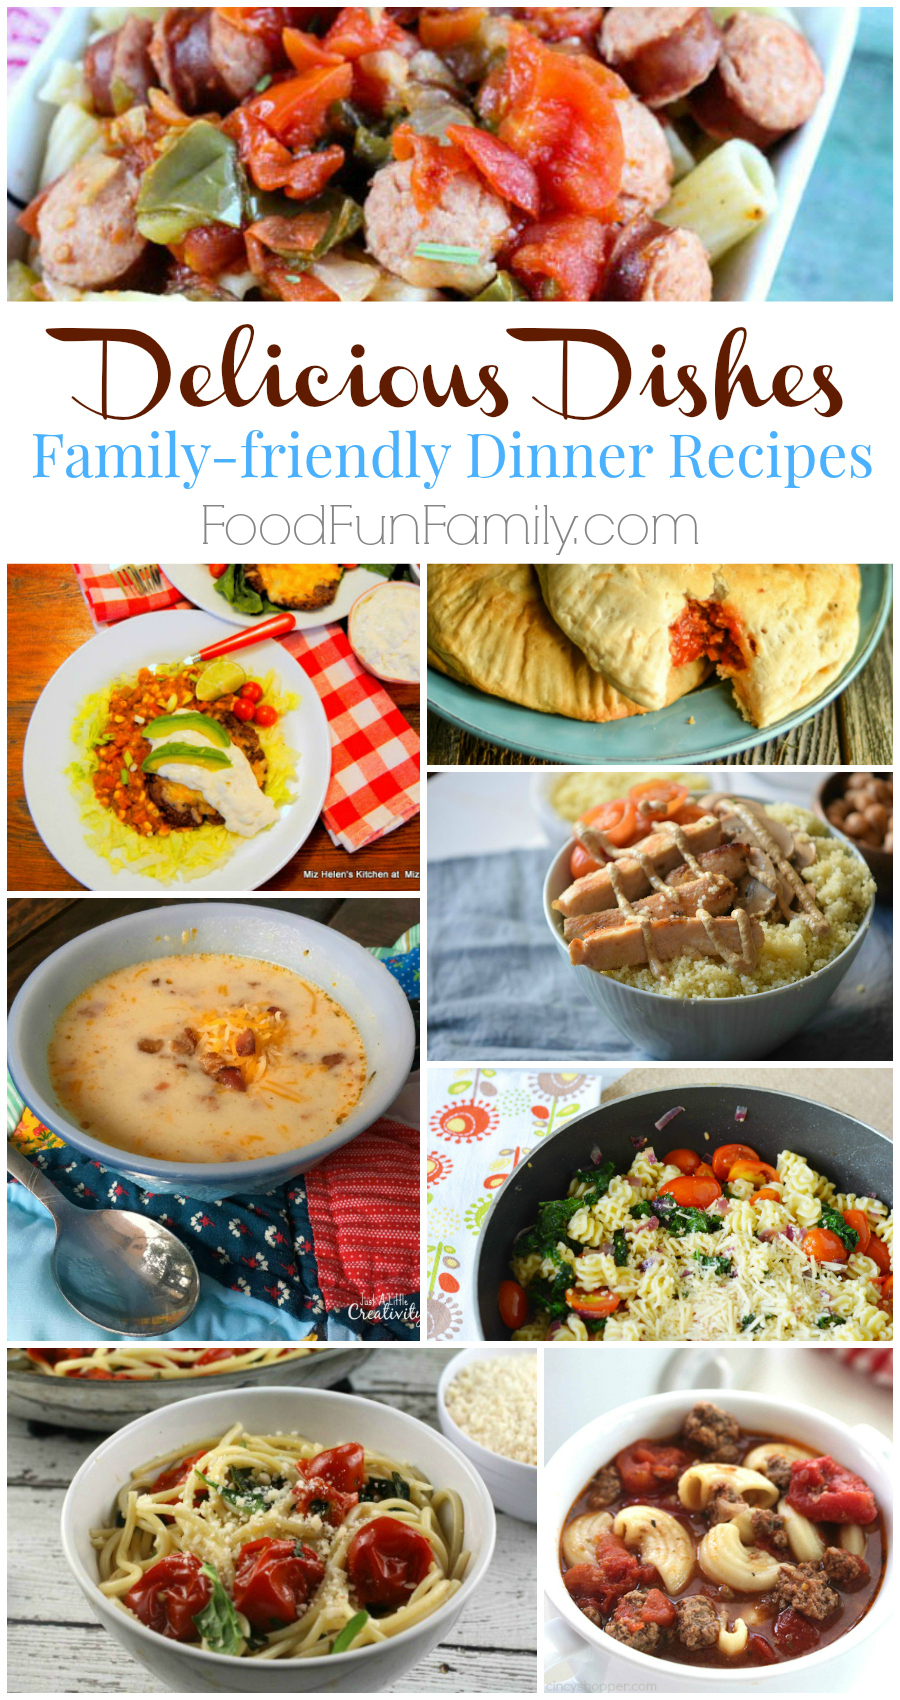 Delicious Dishes #35 - Family-friendly Dinner Recipes and more